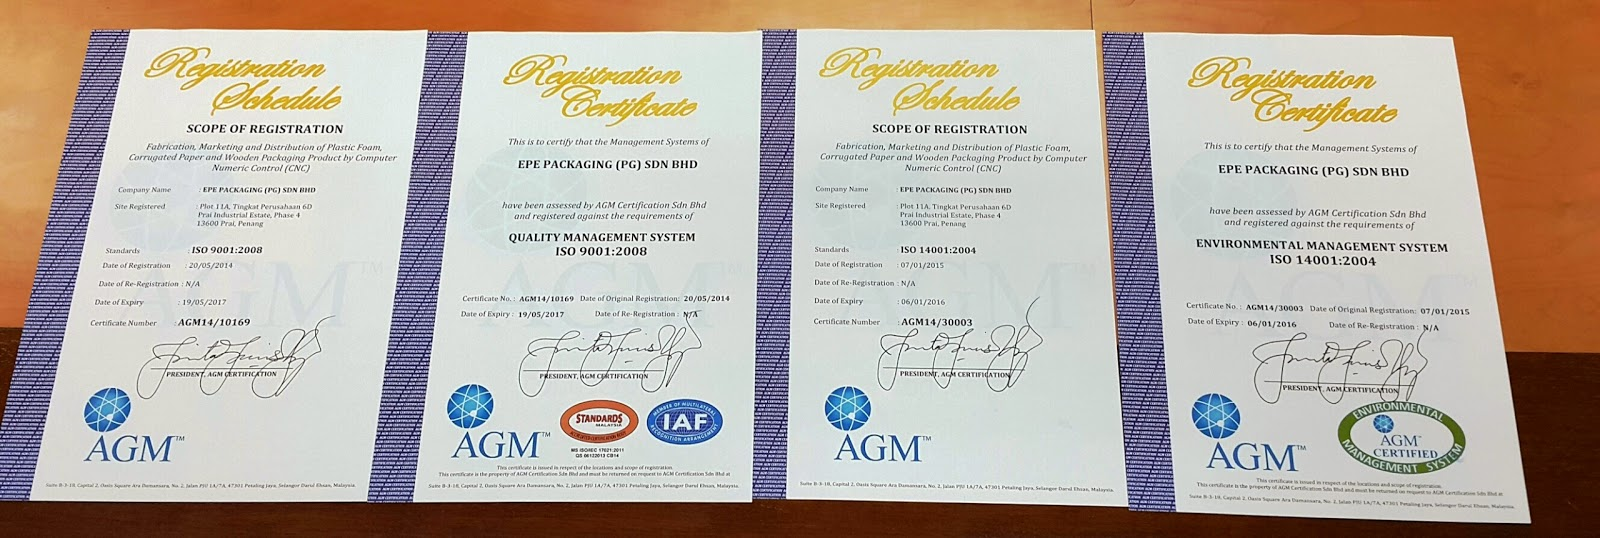 Iso 14001 Certified Certificate Presentation By Agm On 09 January